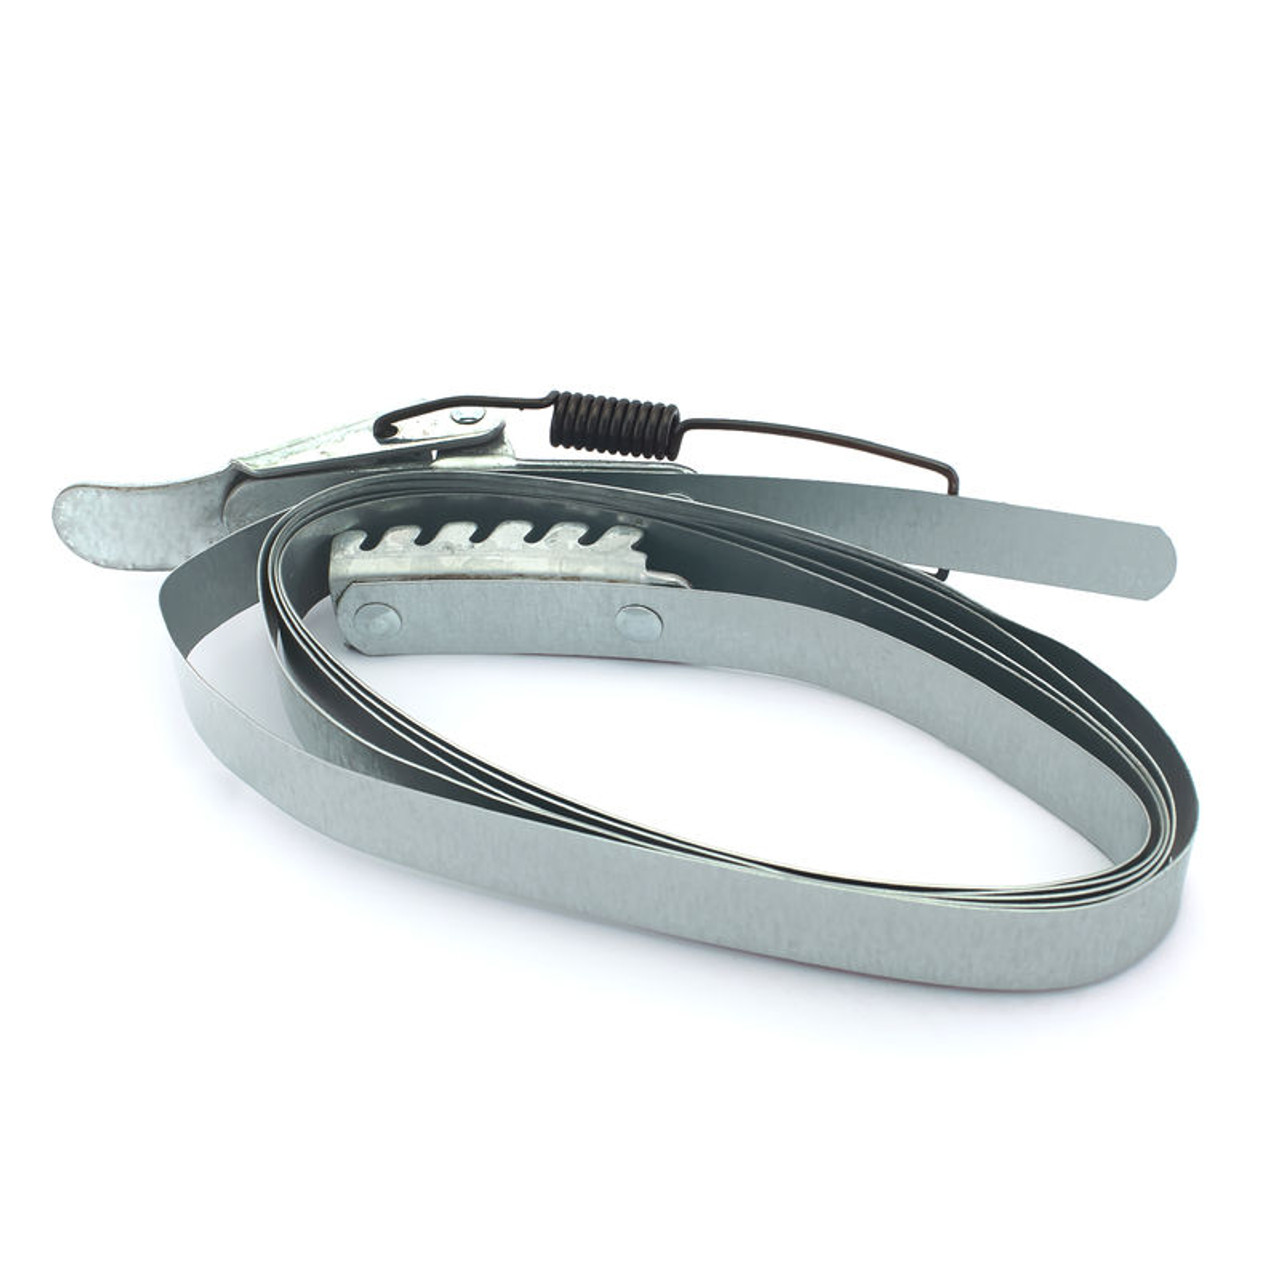 18-5//8 to 19 483mm 473mm POWERTEC 71228 Band Clamp for Dust Collector